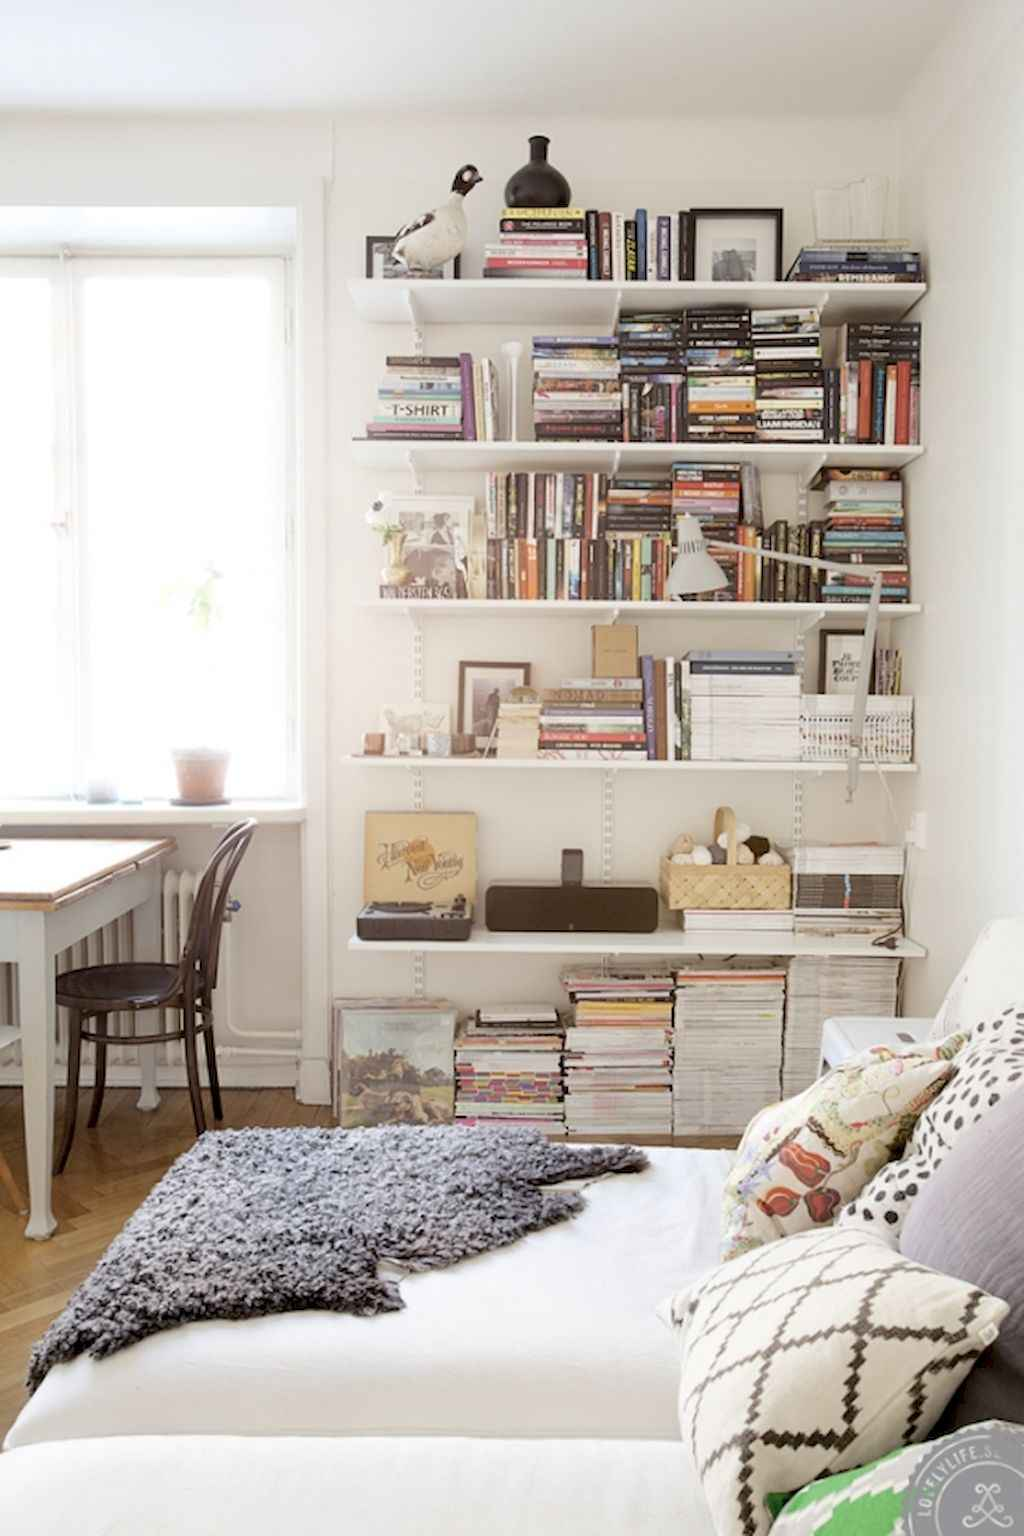 Cool small apartment decorating ideas on a budget (16)